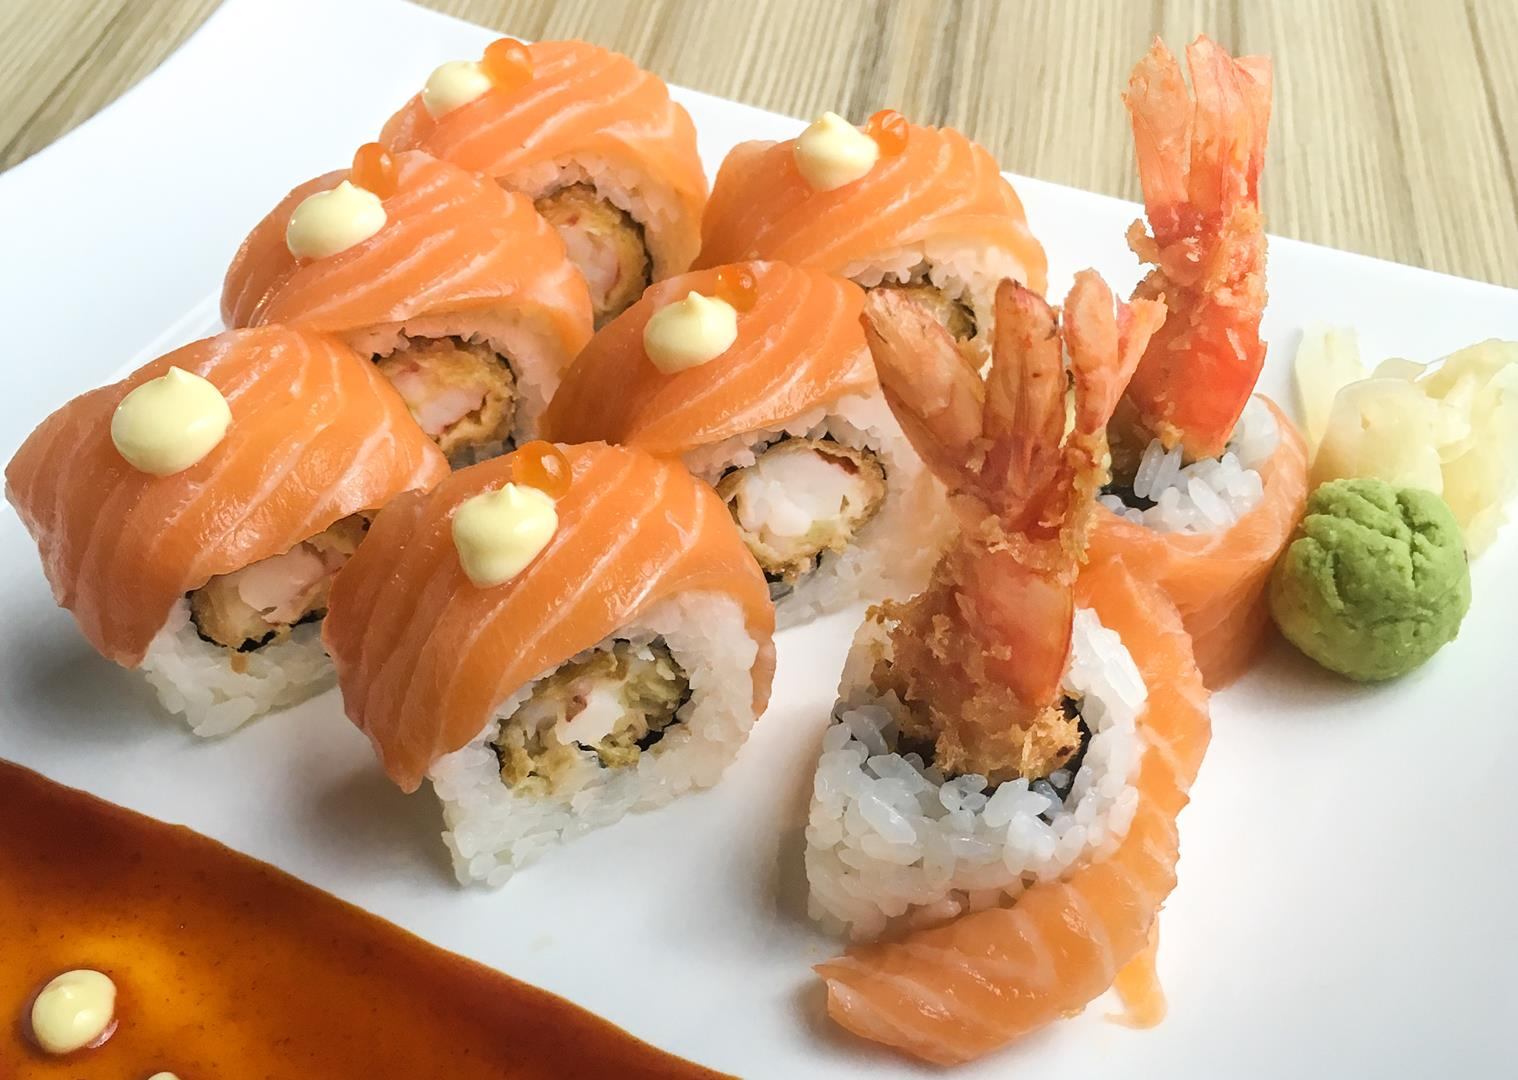 Salmon rolls are made more delectable with ebi tempura filling.